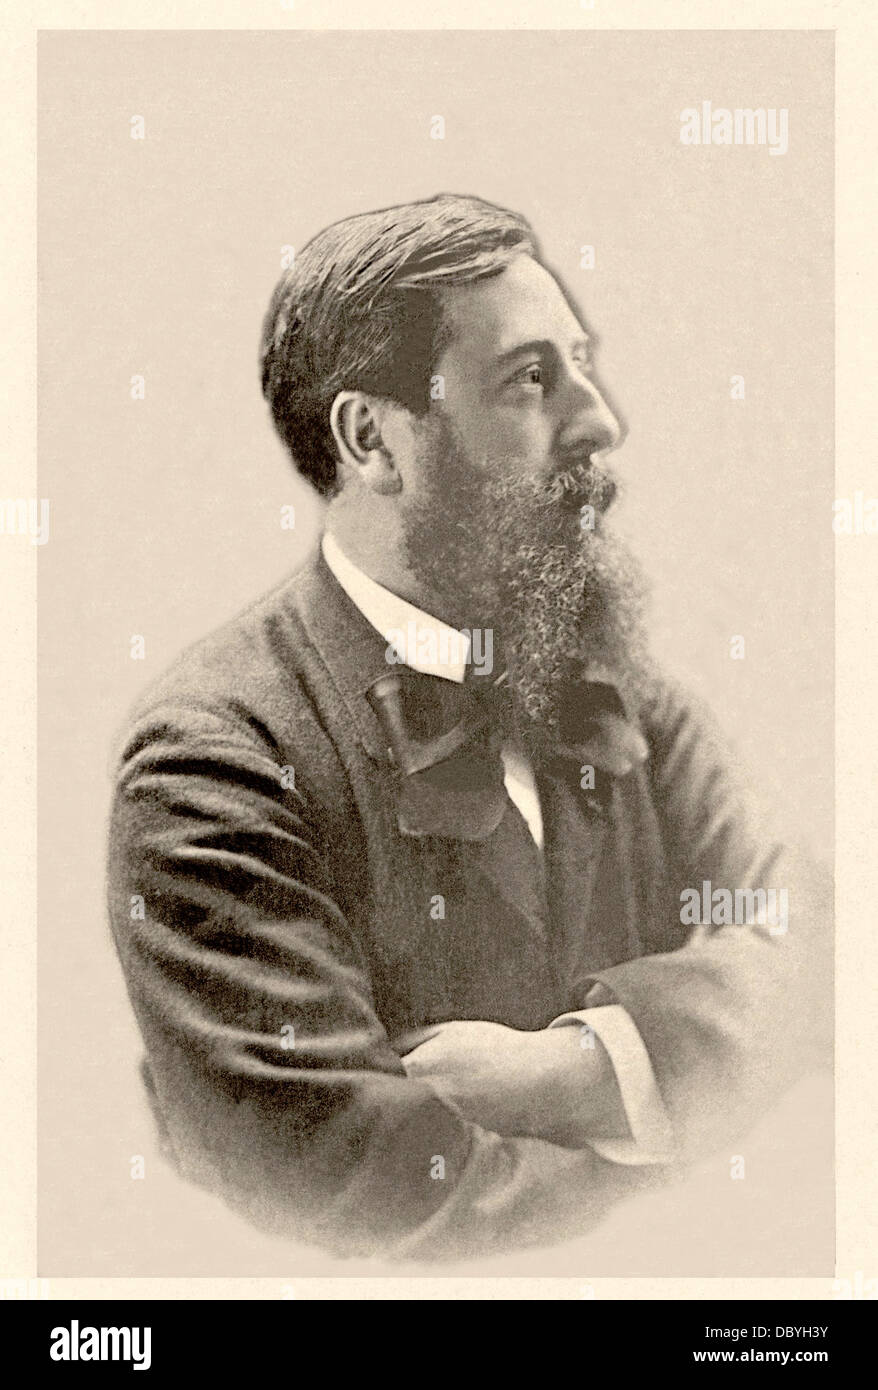 Léo Delibes (1836-1891), french composer. - Stock Image